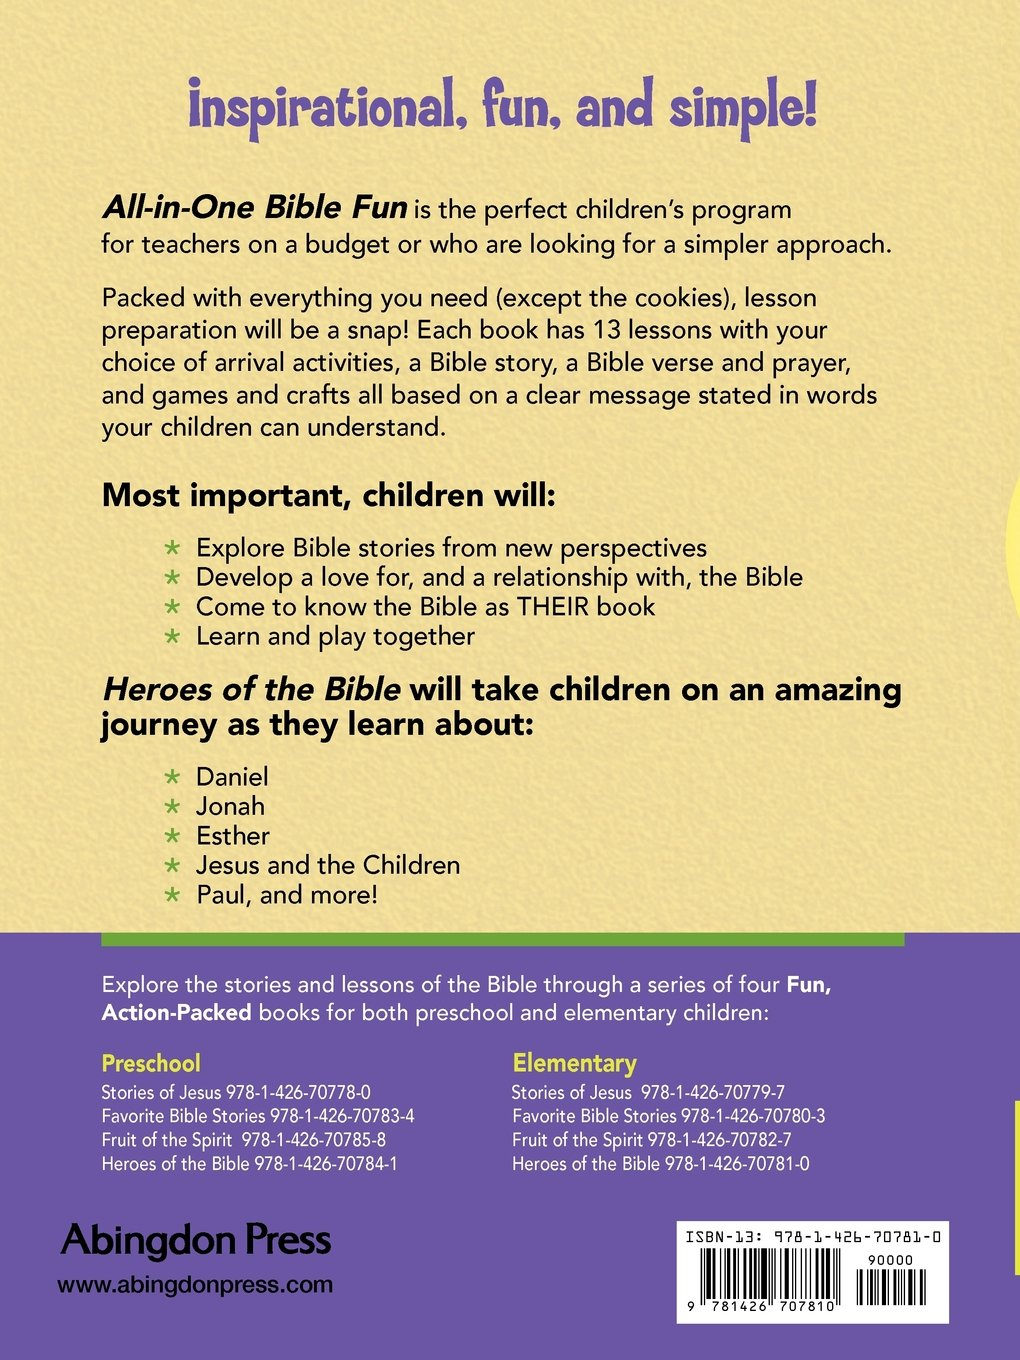 all in one bible fun for elementary children heroes of the bible